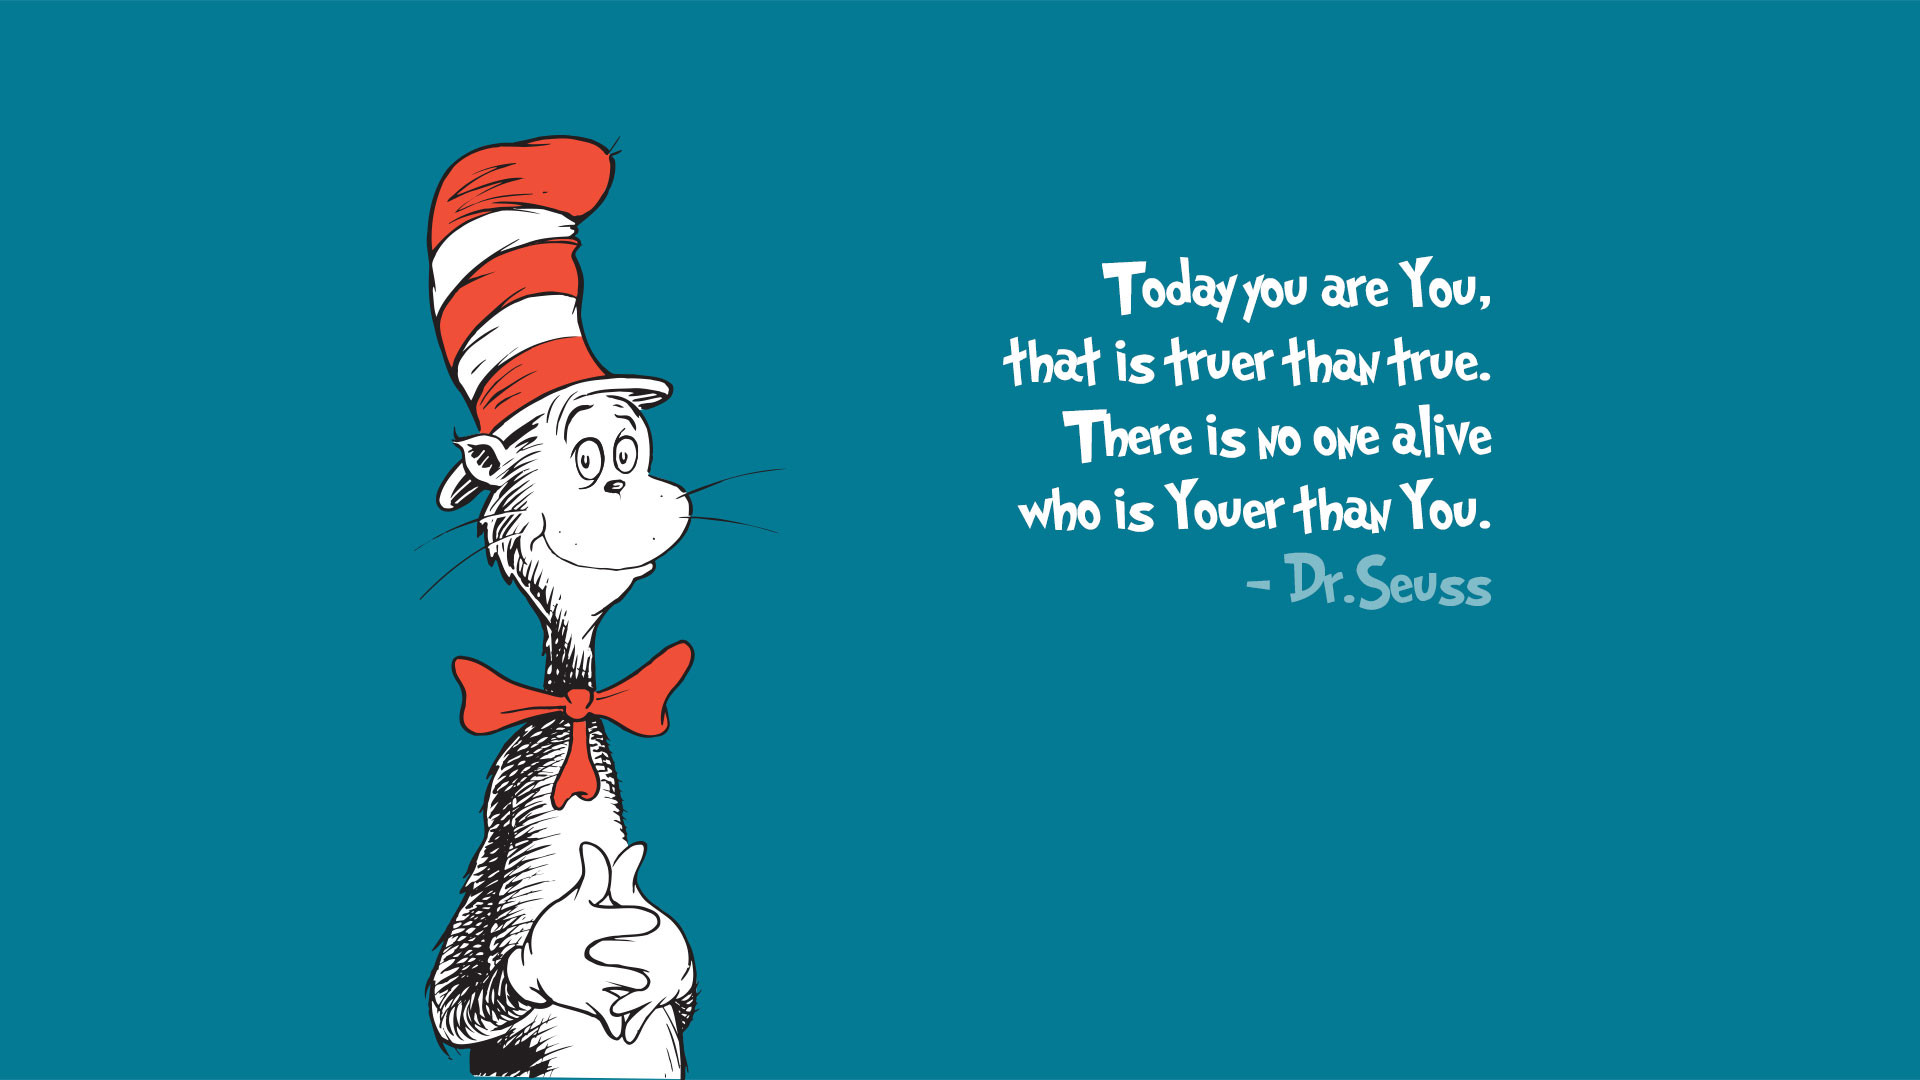 Full Hd Wallpapers For Iphone 4 Dr Suess Wallpaper 64 Images